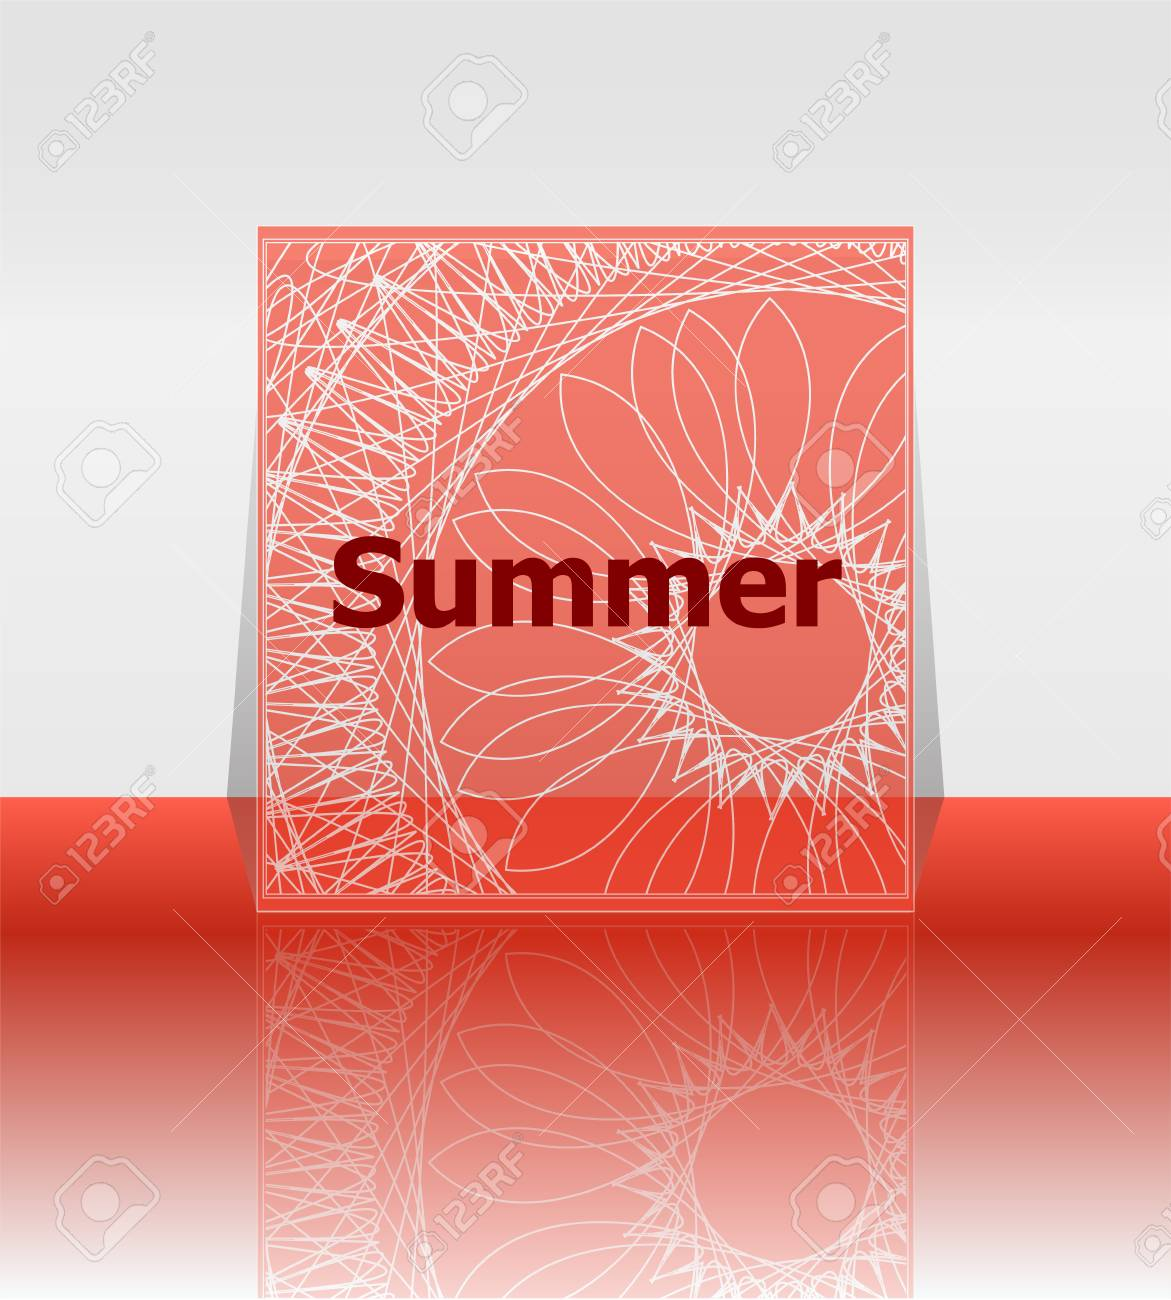 Hello Summer Poster. Summer Background. Effects Poster, Frame. Happy Holidays  Card,